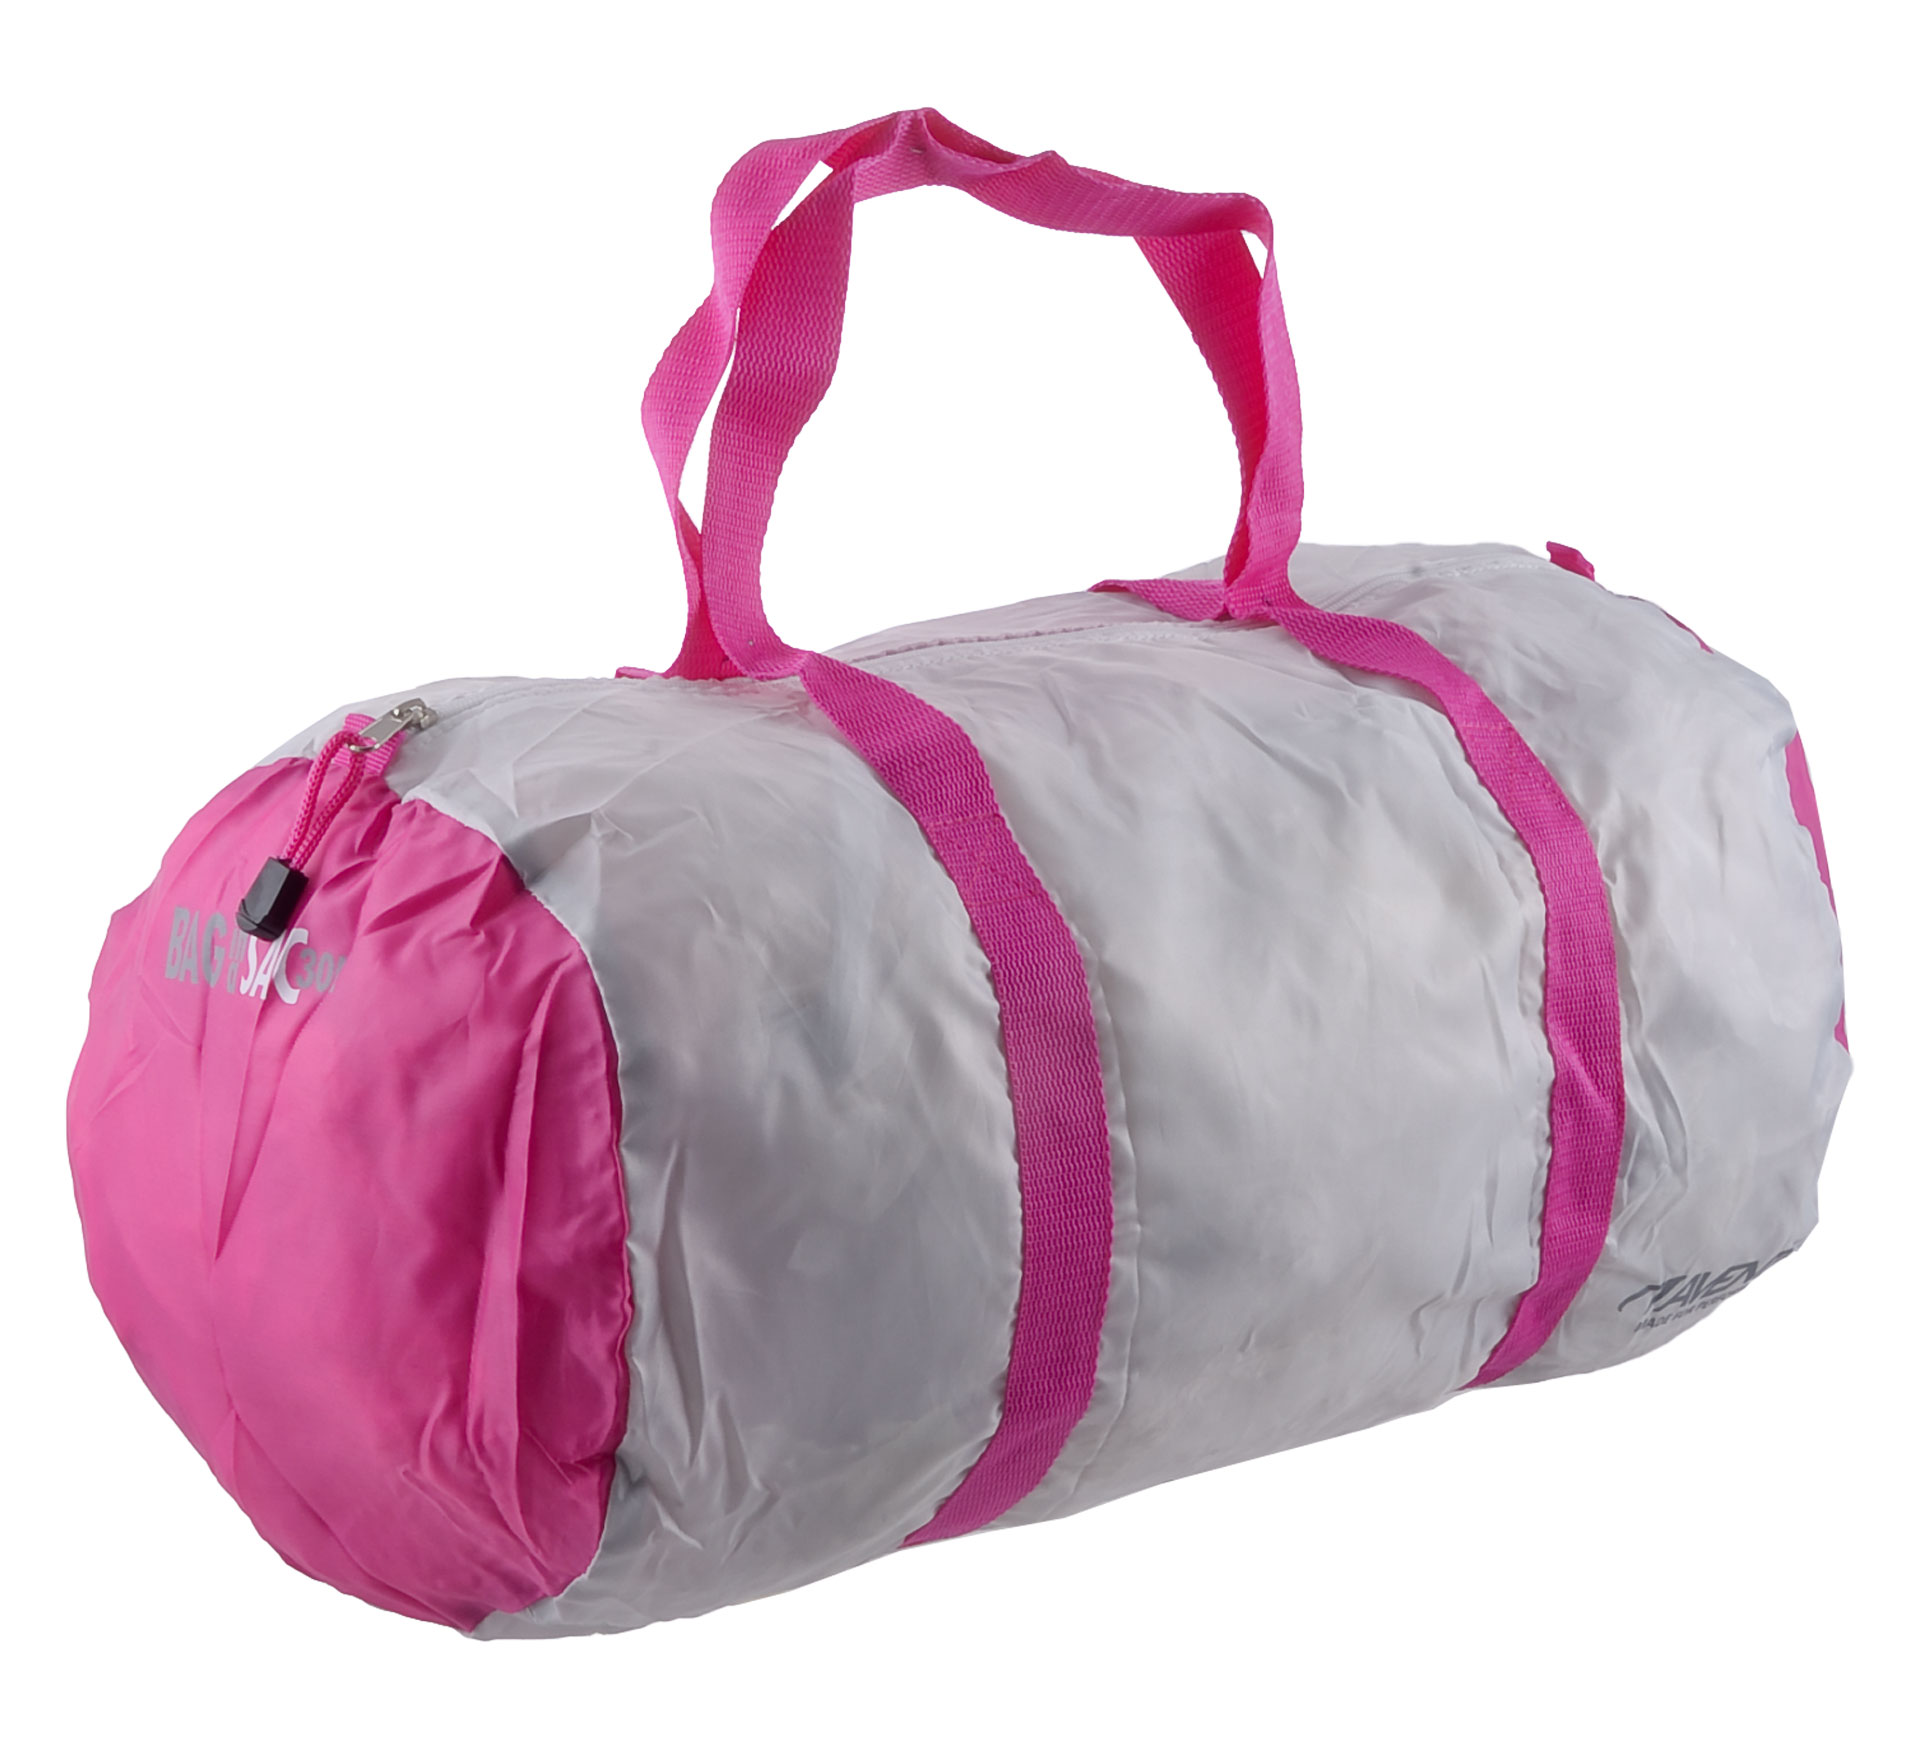 Avento Sports Tas in een Zak wit - roze